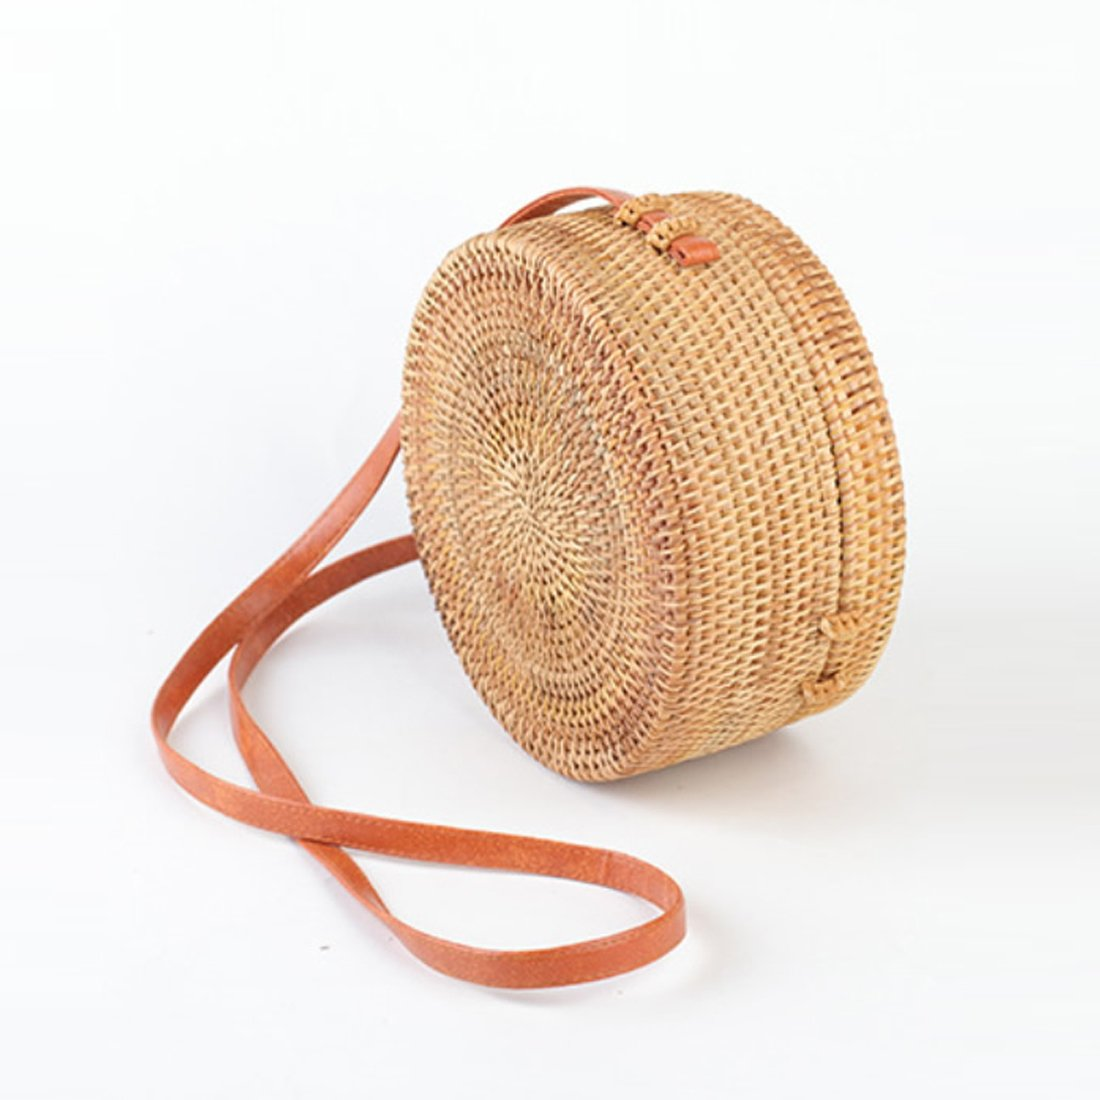 Straw Crossbody Bag, Vintage Handwoven Round Ata Rattan Shoulder Bag Straw Purse with Bow Clasp by KNUS (Image #1)